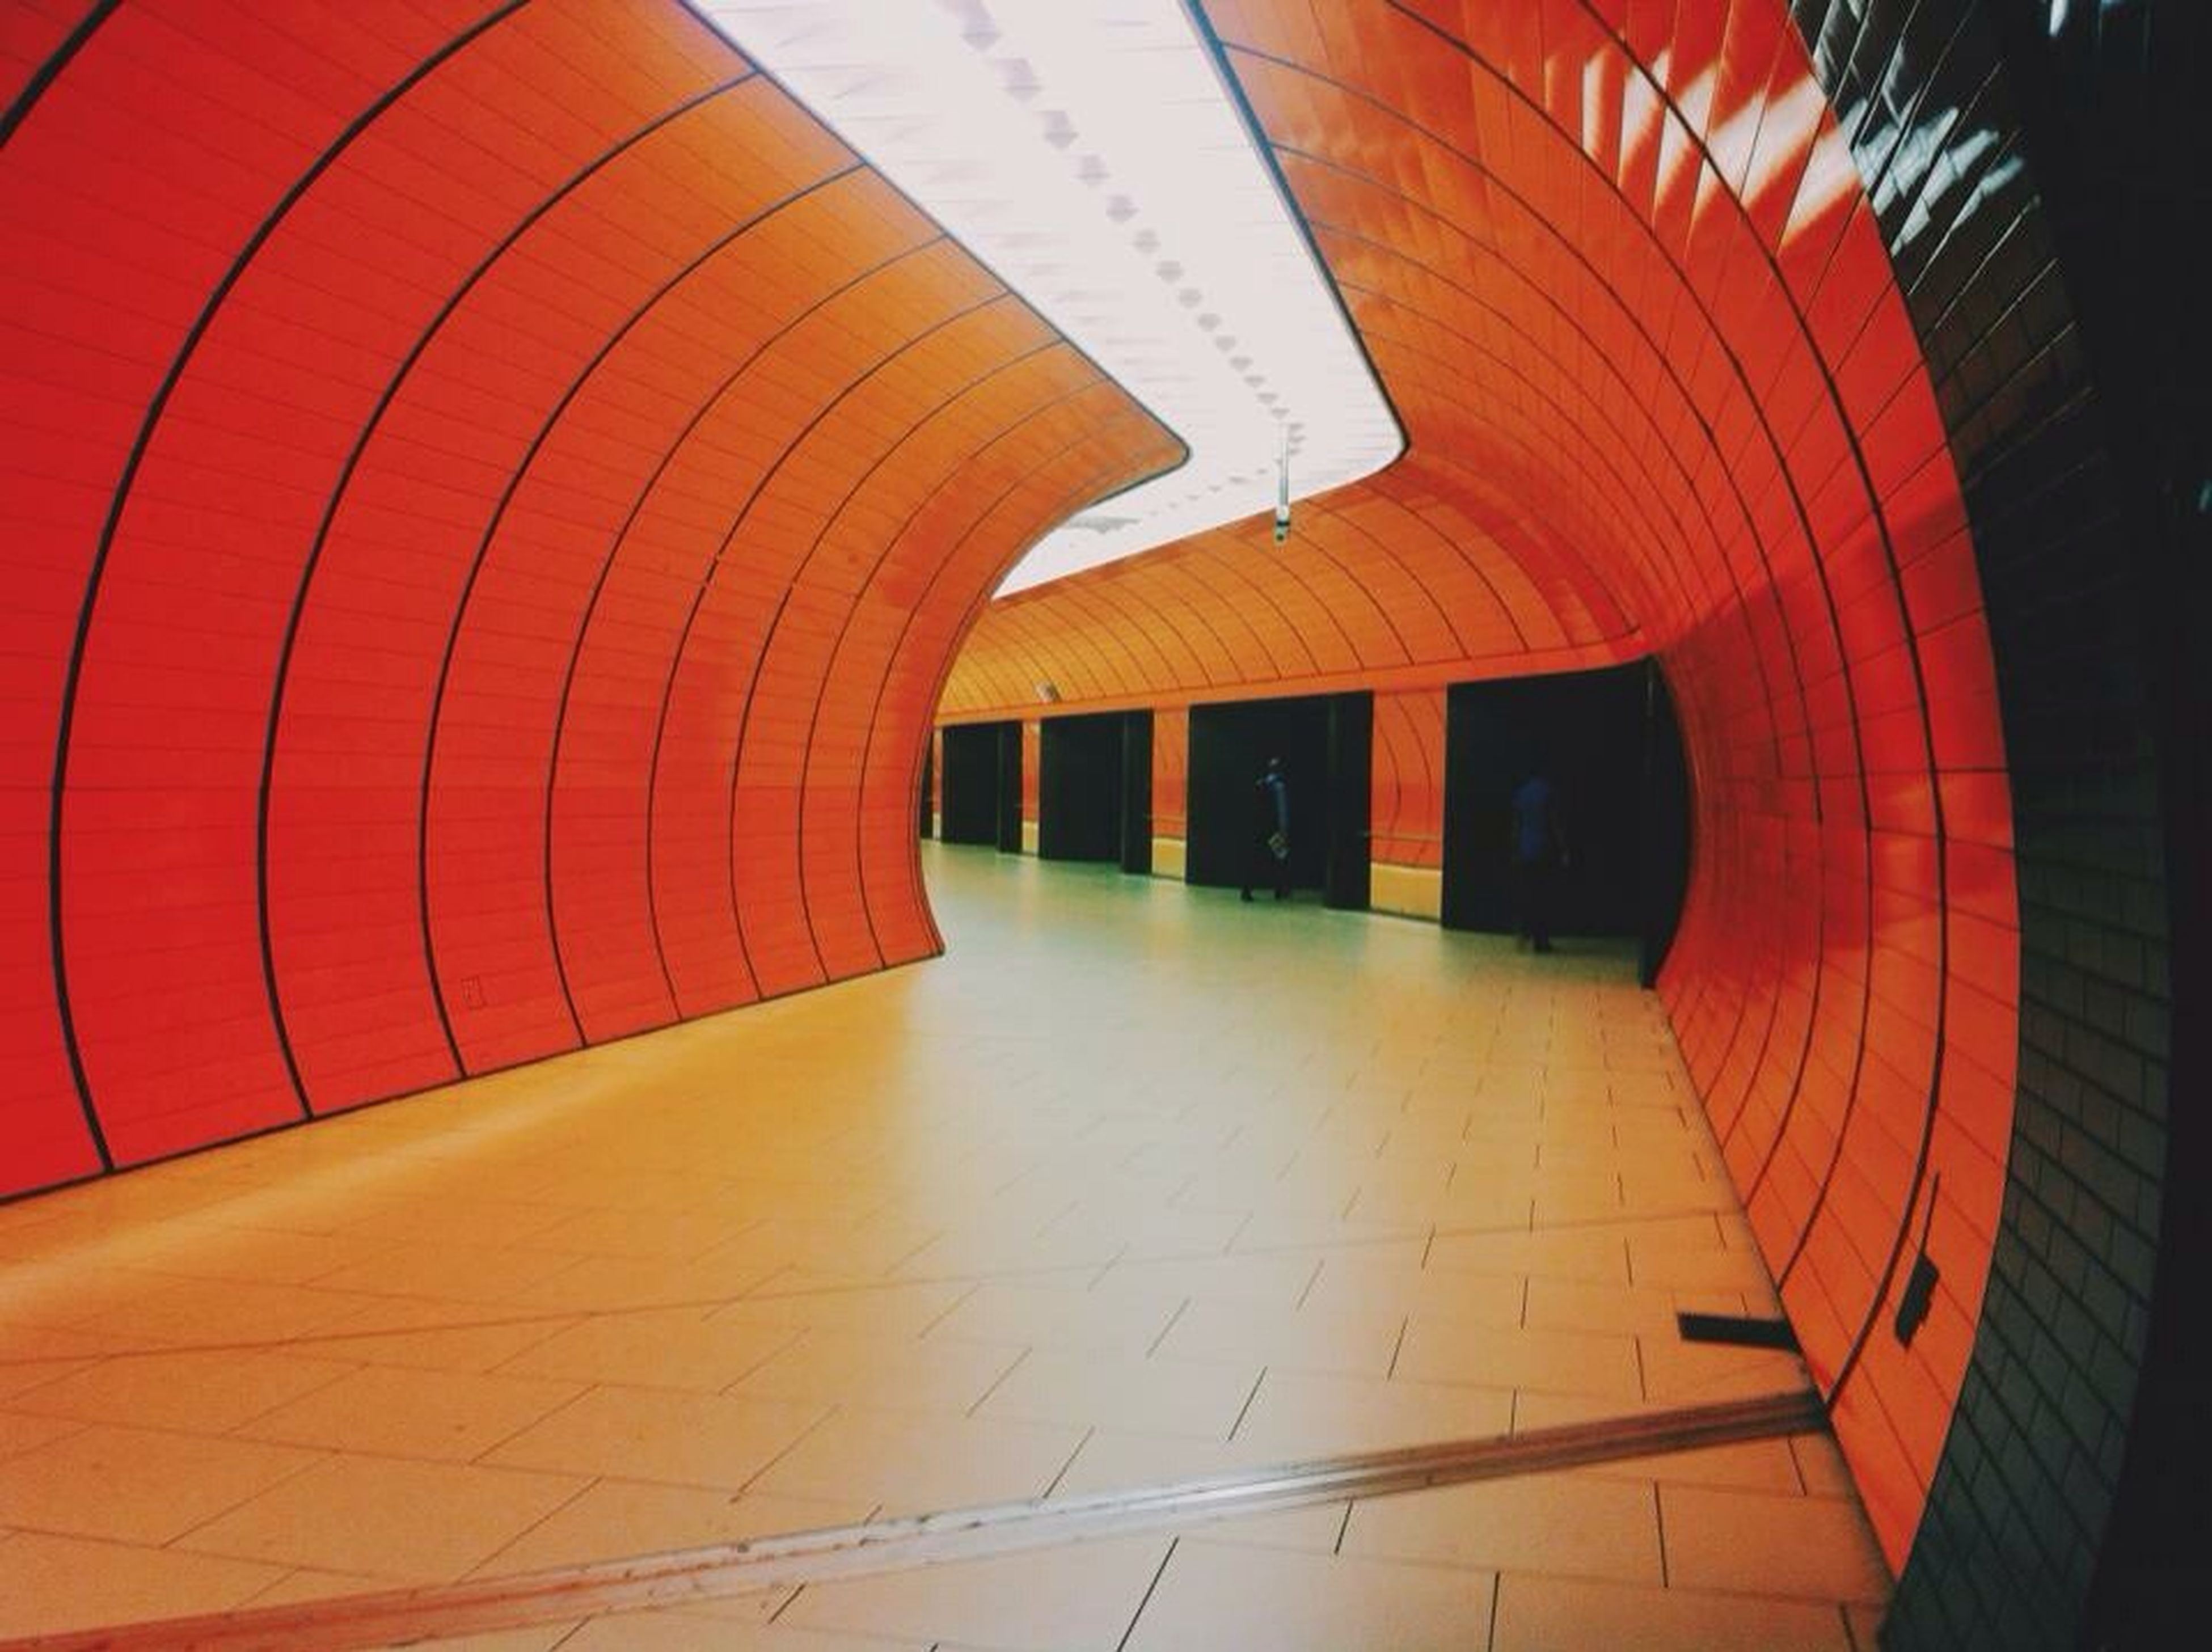 indoors, built structure, architecture, the way forward, red, empty, diminishing perspective, modern, building exterior, in a row, building, pattern, no people, wall - building feature, absence, steps, illuminated, steps and staircases, vanishing point, railing